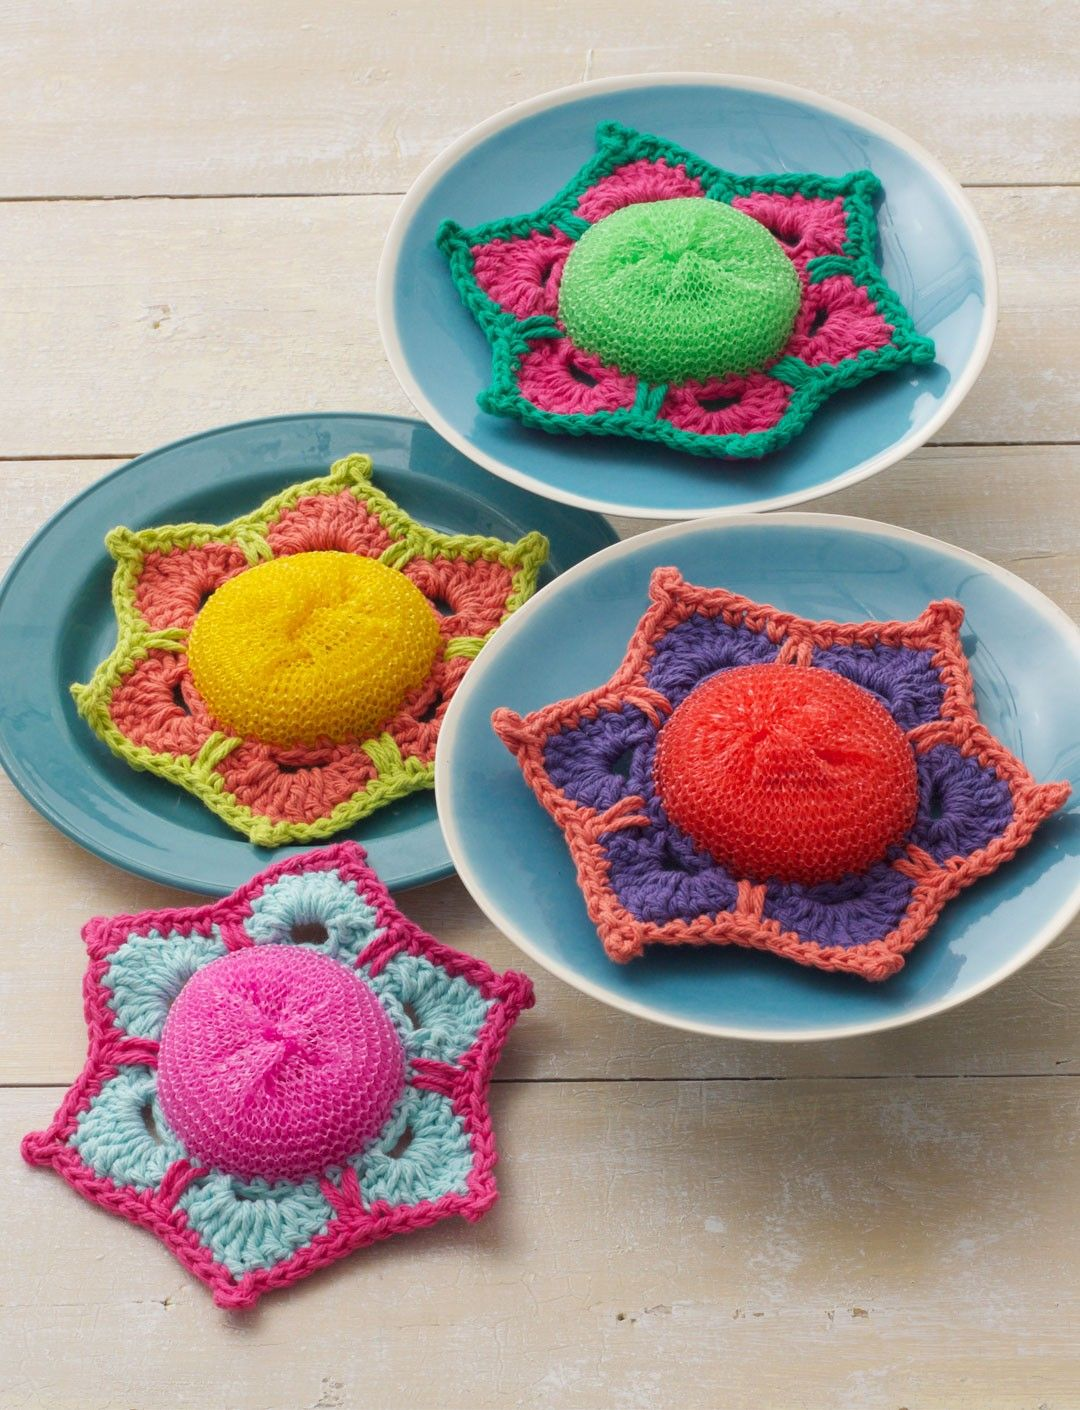 Yarnspirations.com - Lily Scrubby Posey - Patterns | Yarnspirations ...